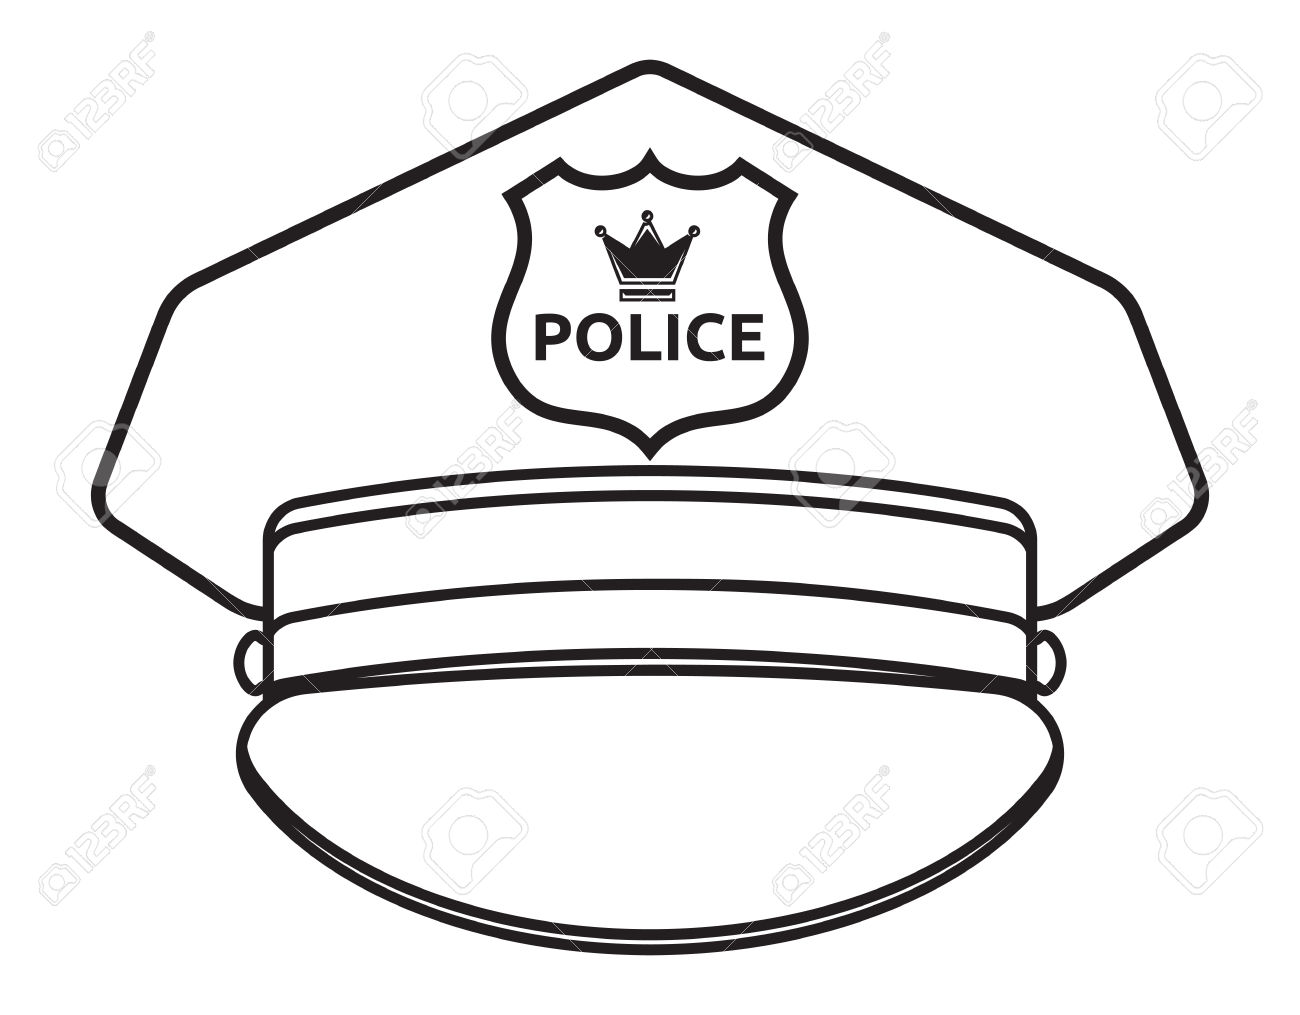 Police cap clipart banner royalty free stock Police hat clip art black and white - ClipartFest banner royalty free stock